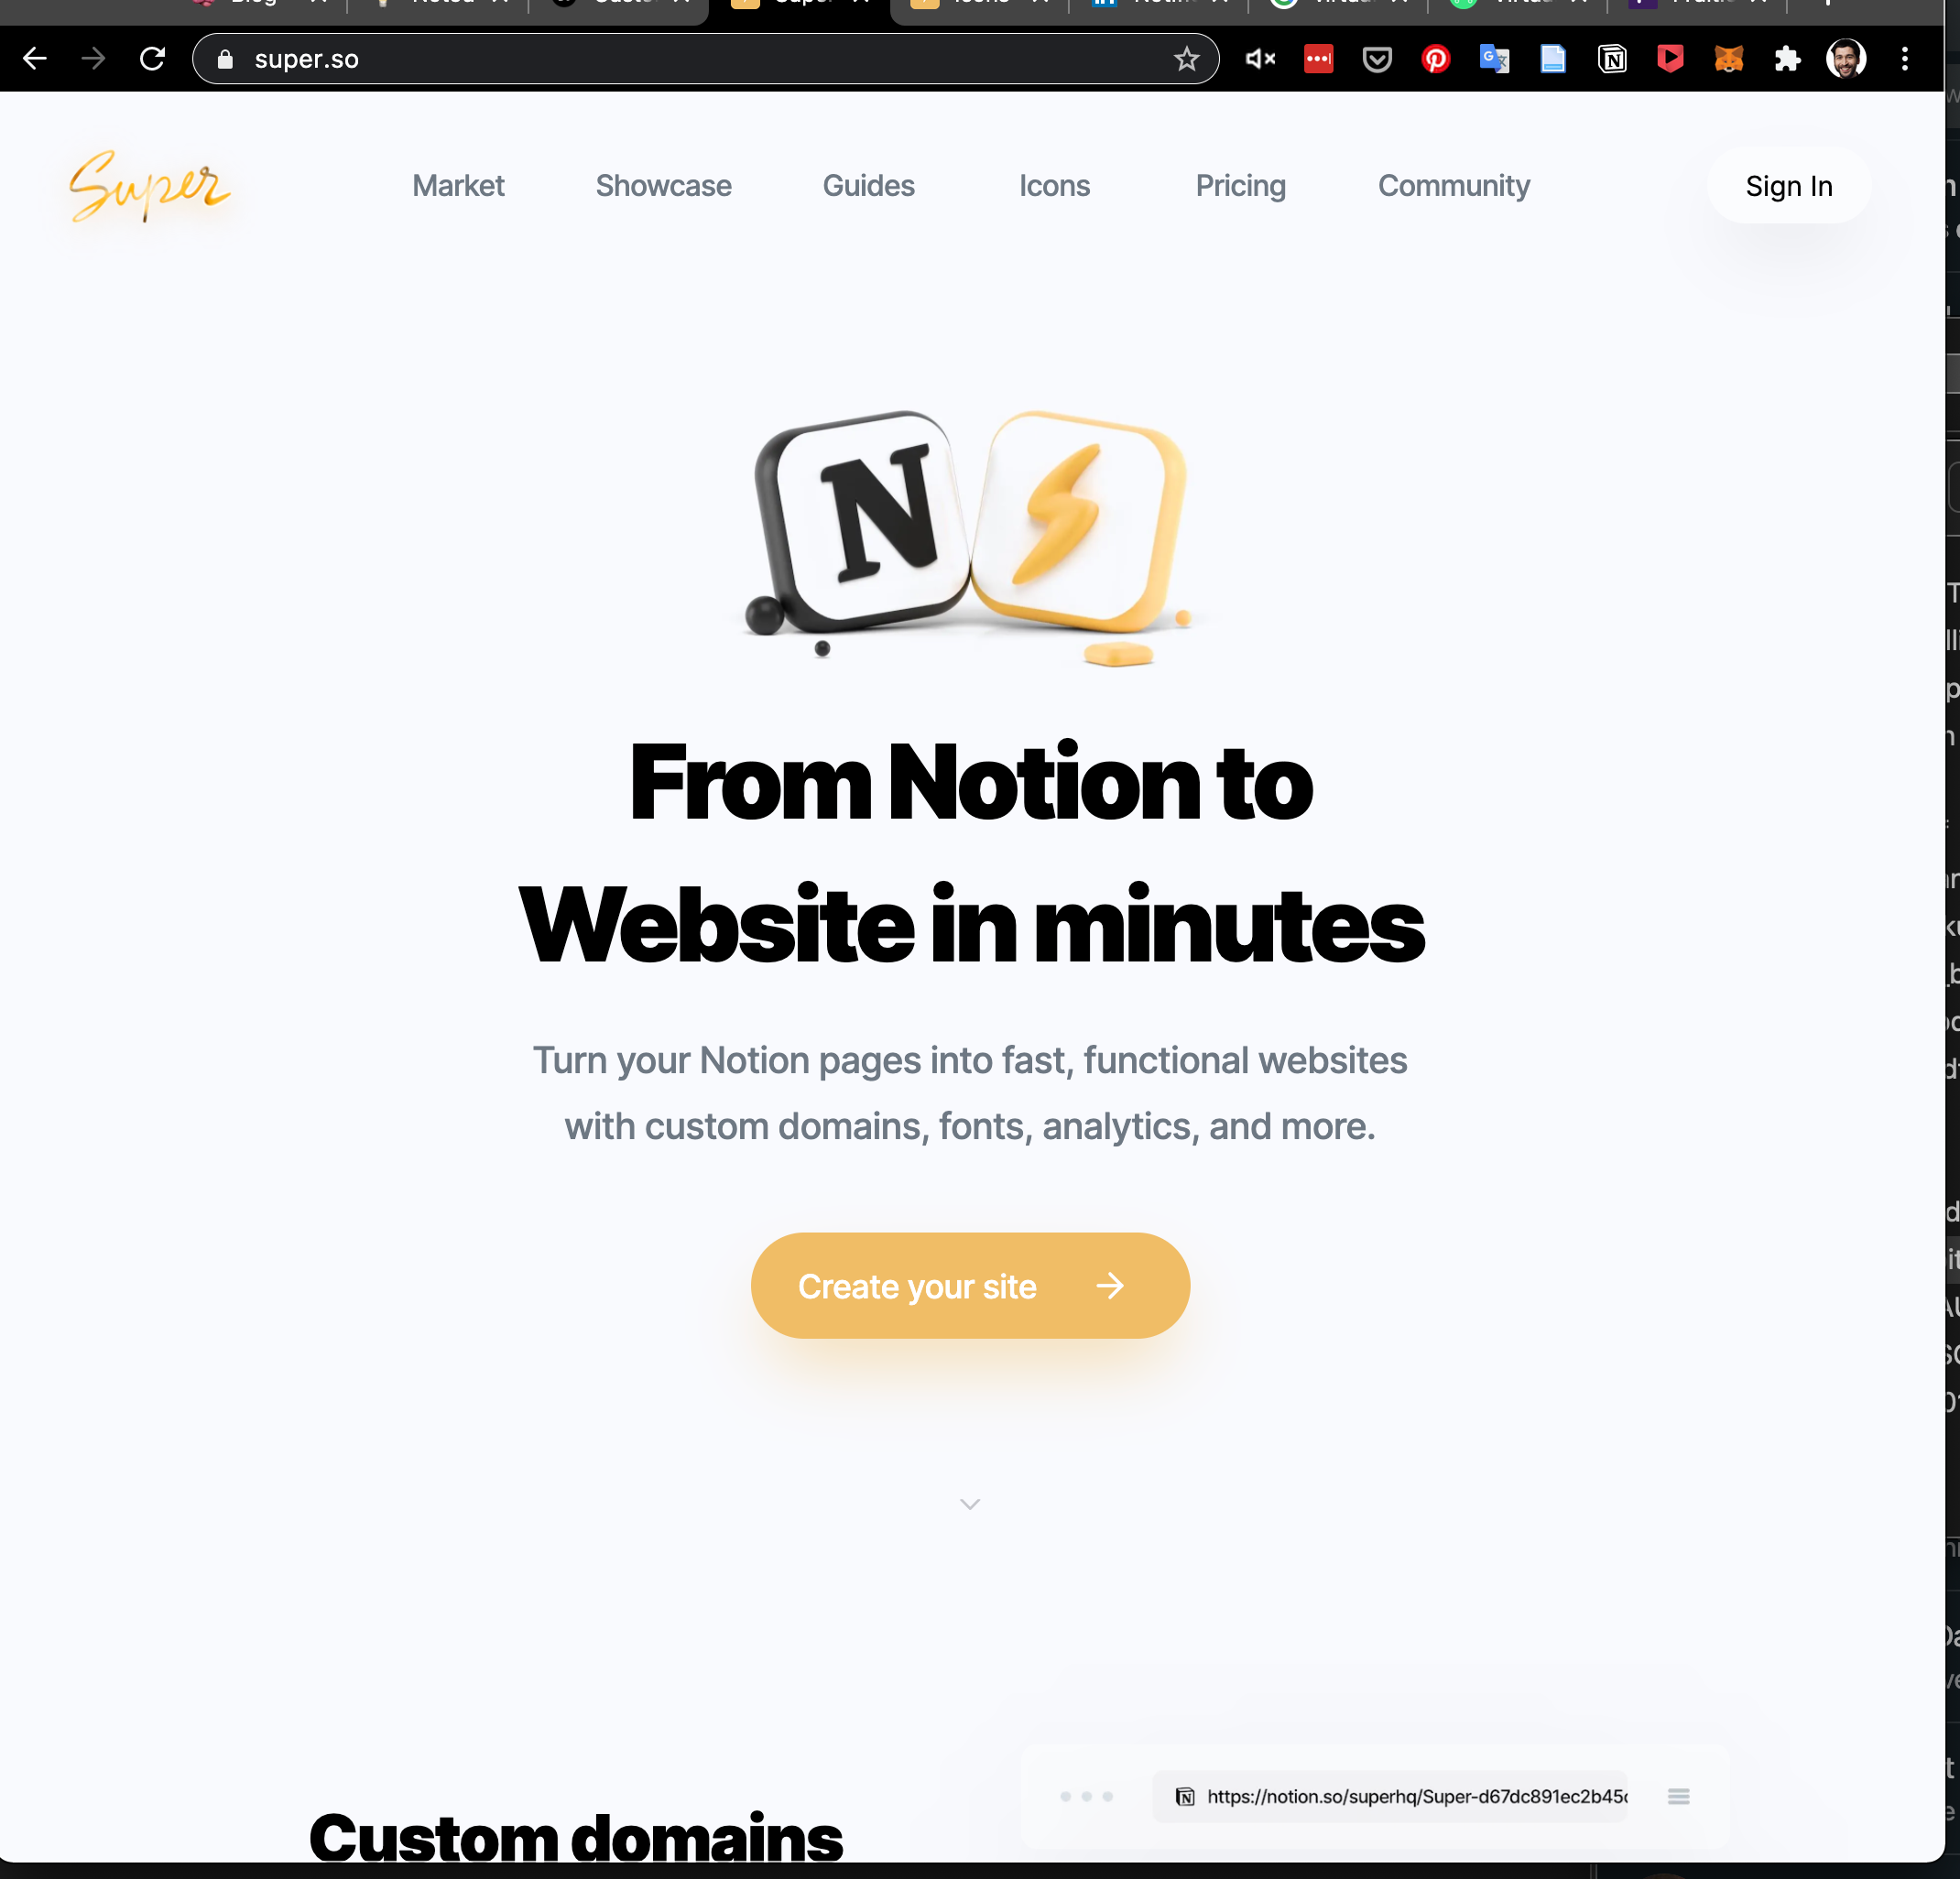 New website, powered by Notion and Fruition